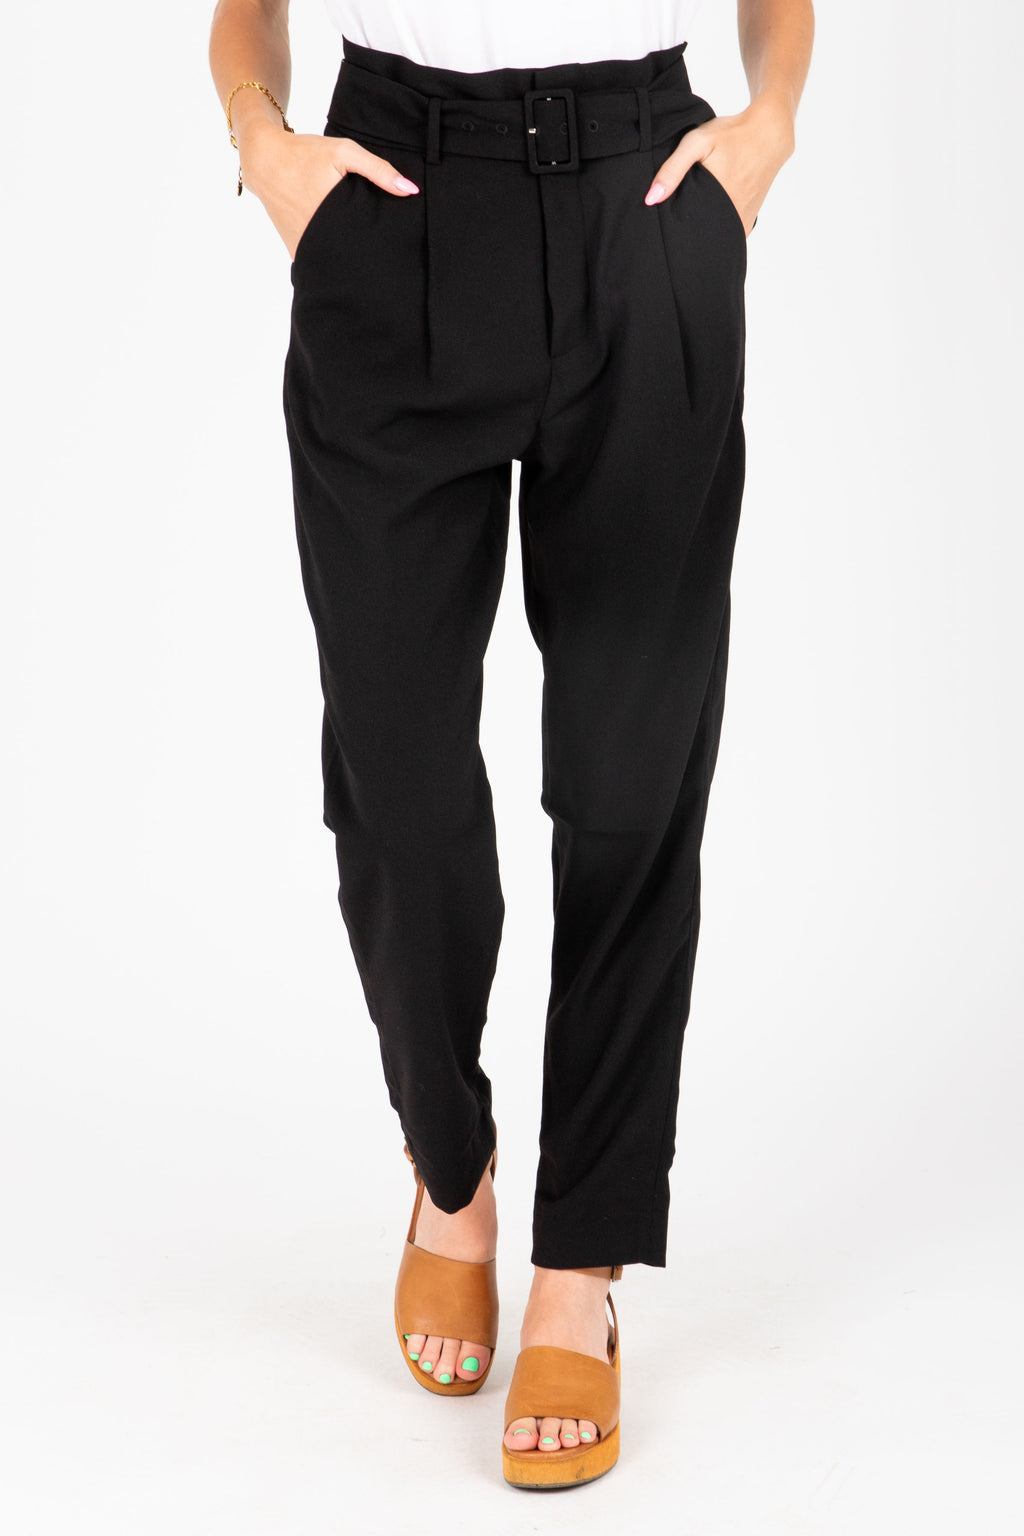 The Dallas Belted Trouser in Black, studio shoot; front view